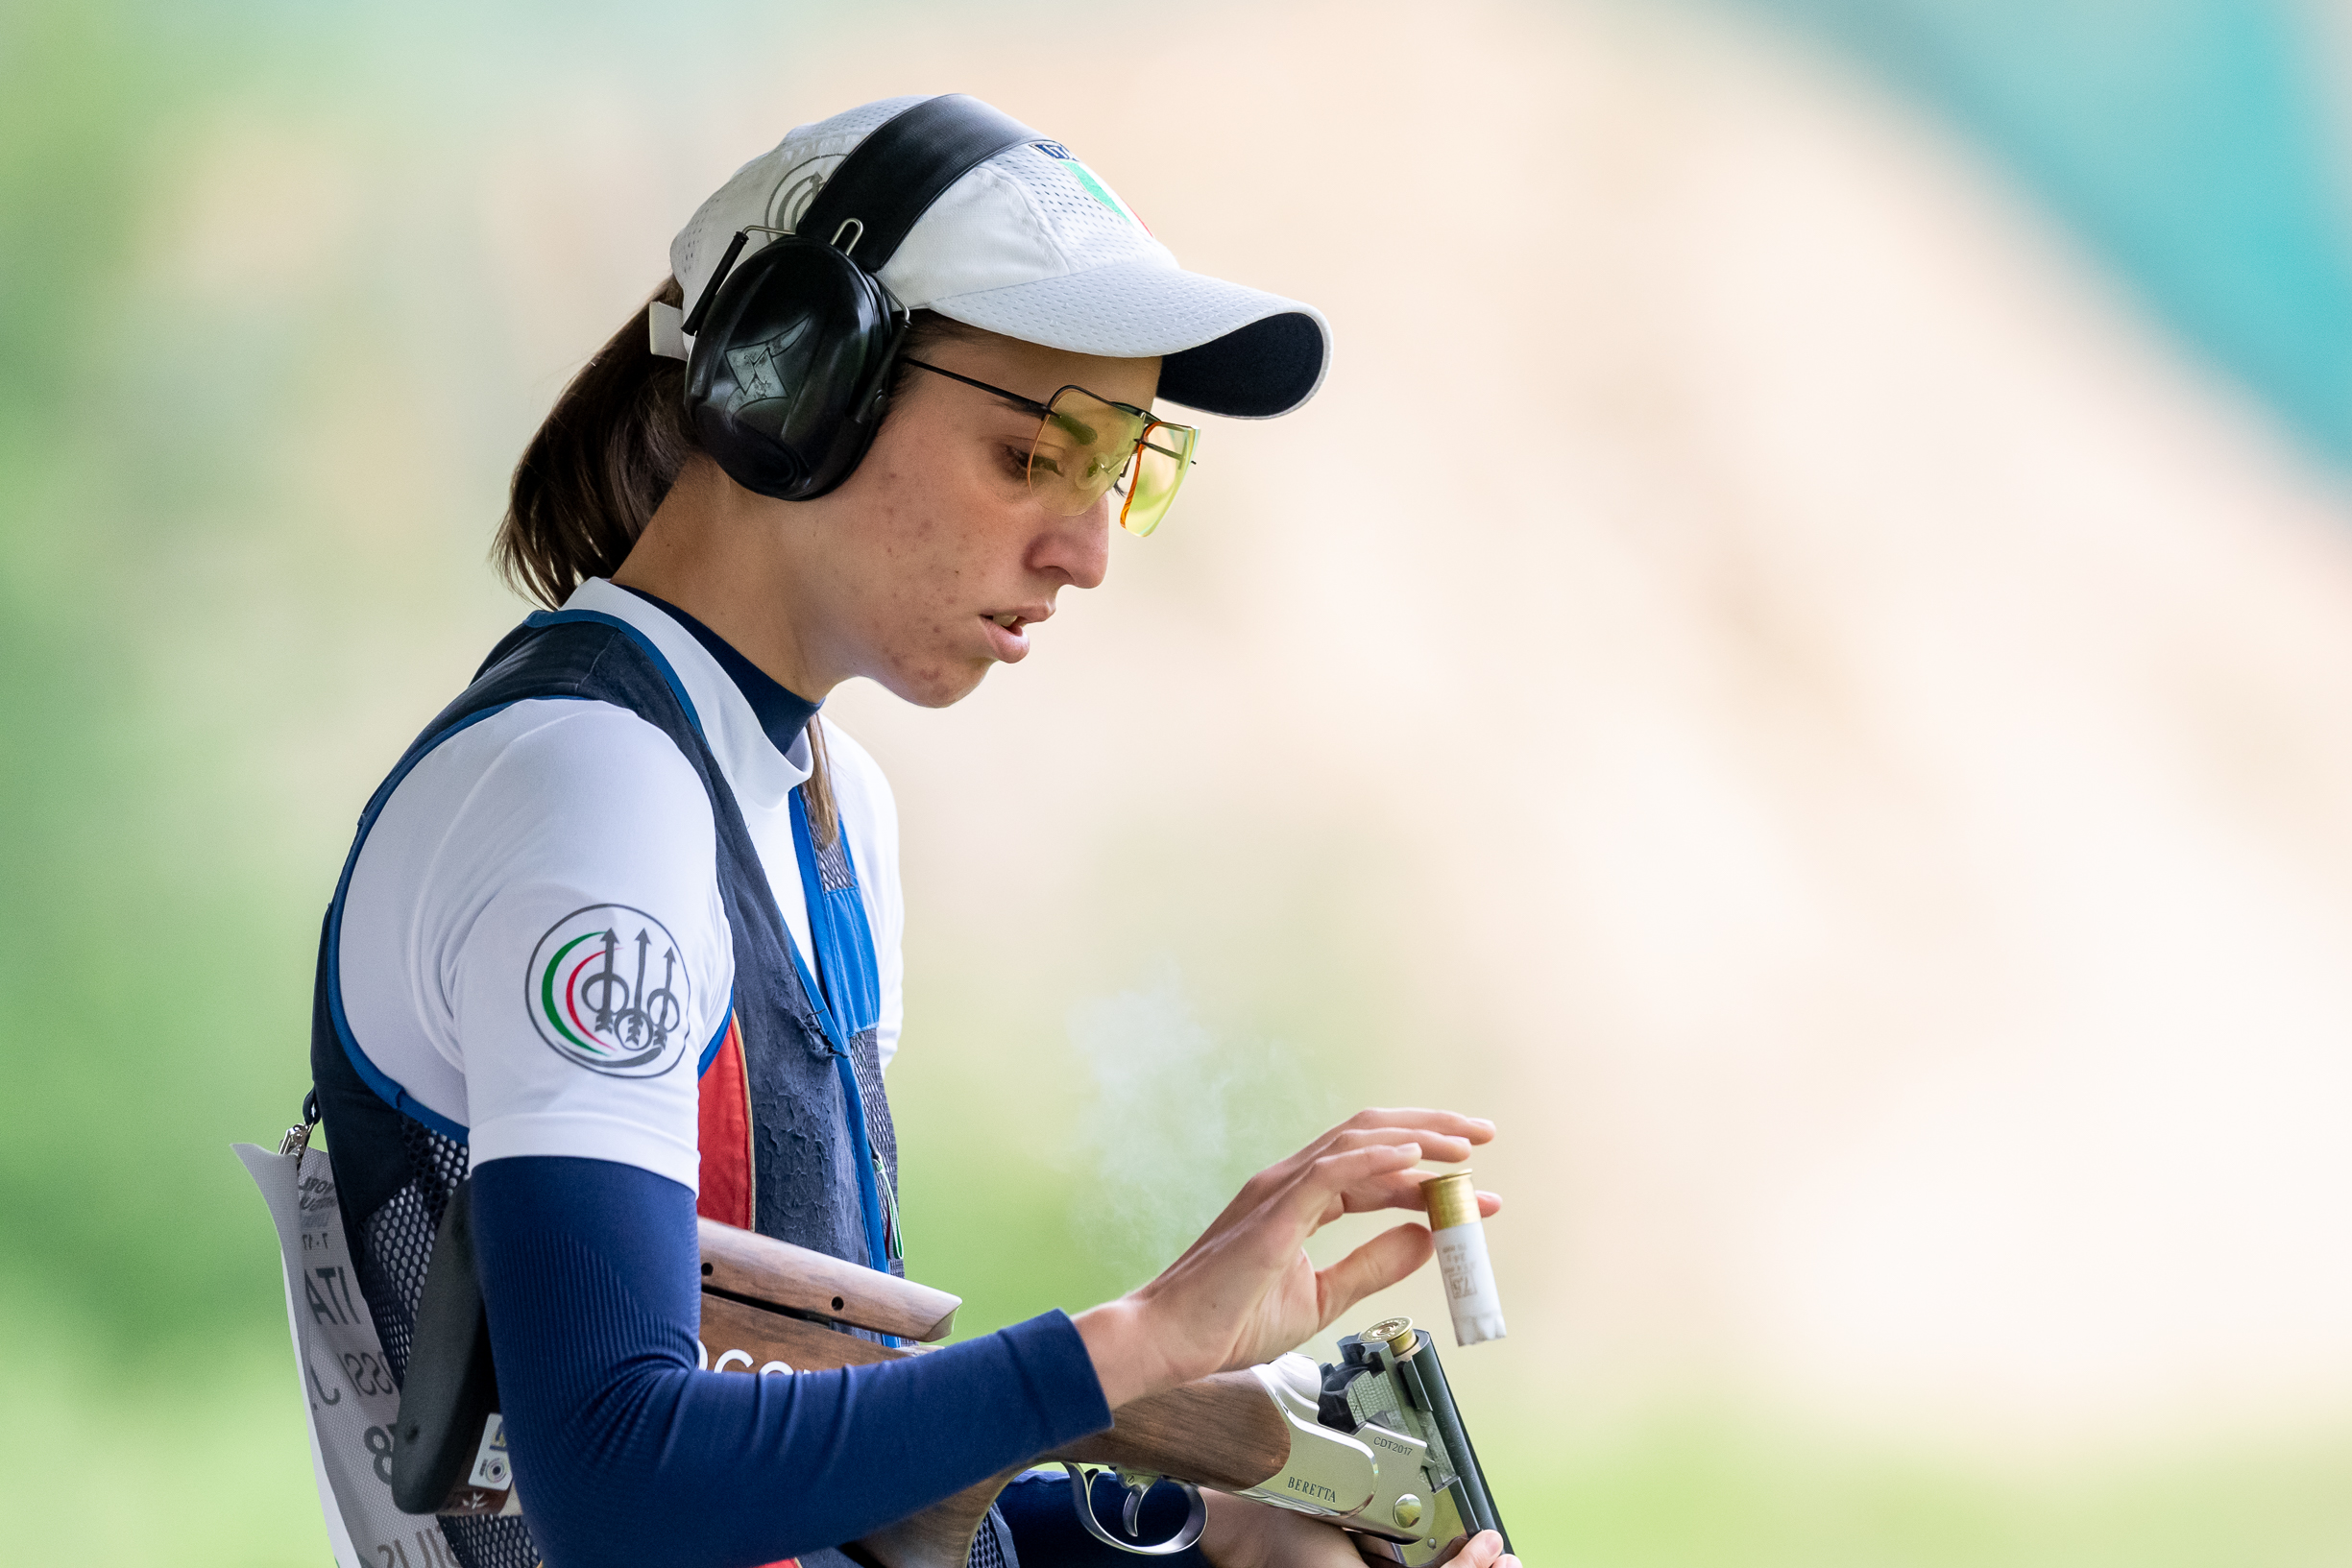 OLYMPIC GAMES: JESSICA ROSSI WILL BE ITALY'S FLAG BEARER IN TOKYO!